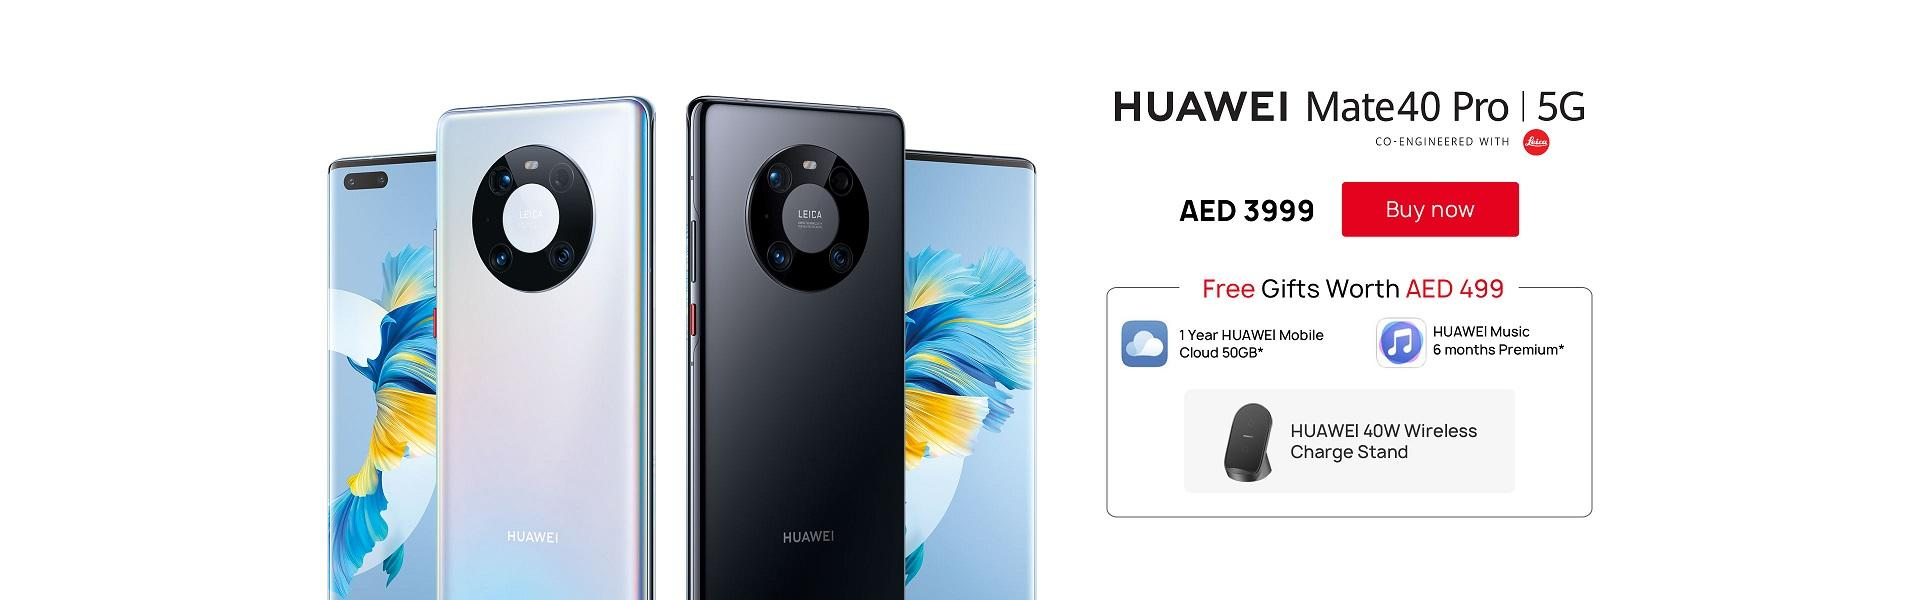 Mate 40 pro Preorder